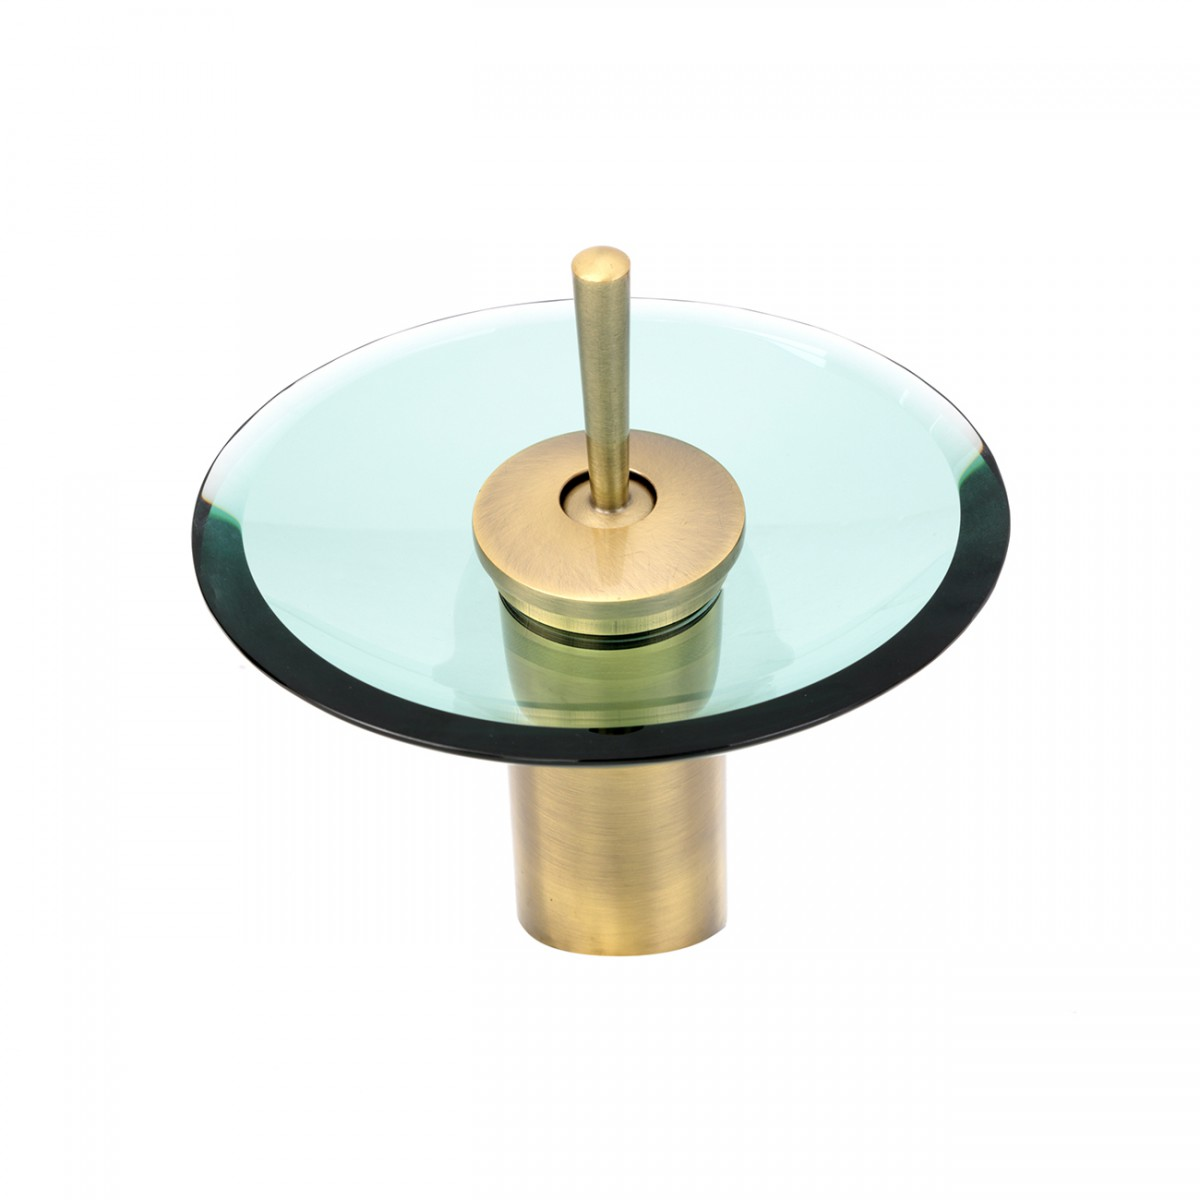 Waterfall Faucet Heavy Antique Brass 7H Clear Glass Disk Glass plate Waterfall Sink Faucet Waterfall Bathroom Faucets Glass Disk Faucet